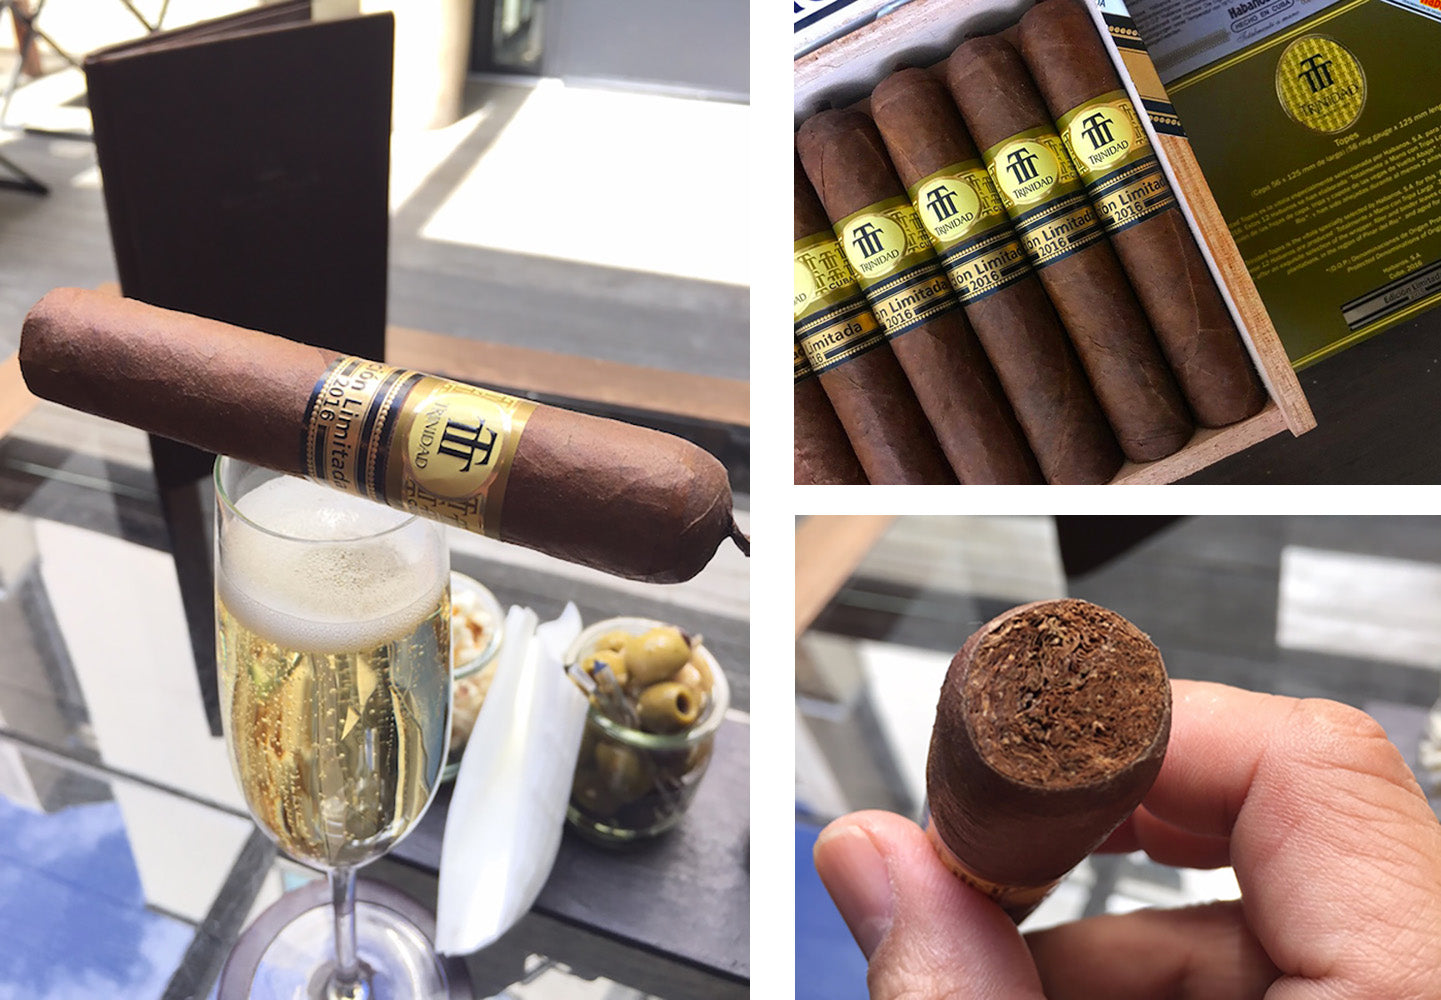 trinidad topes edicion limitada 2016 cuban cigars and champagn egm cigars